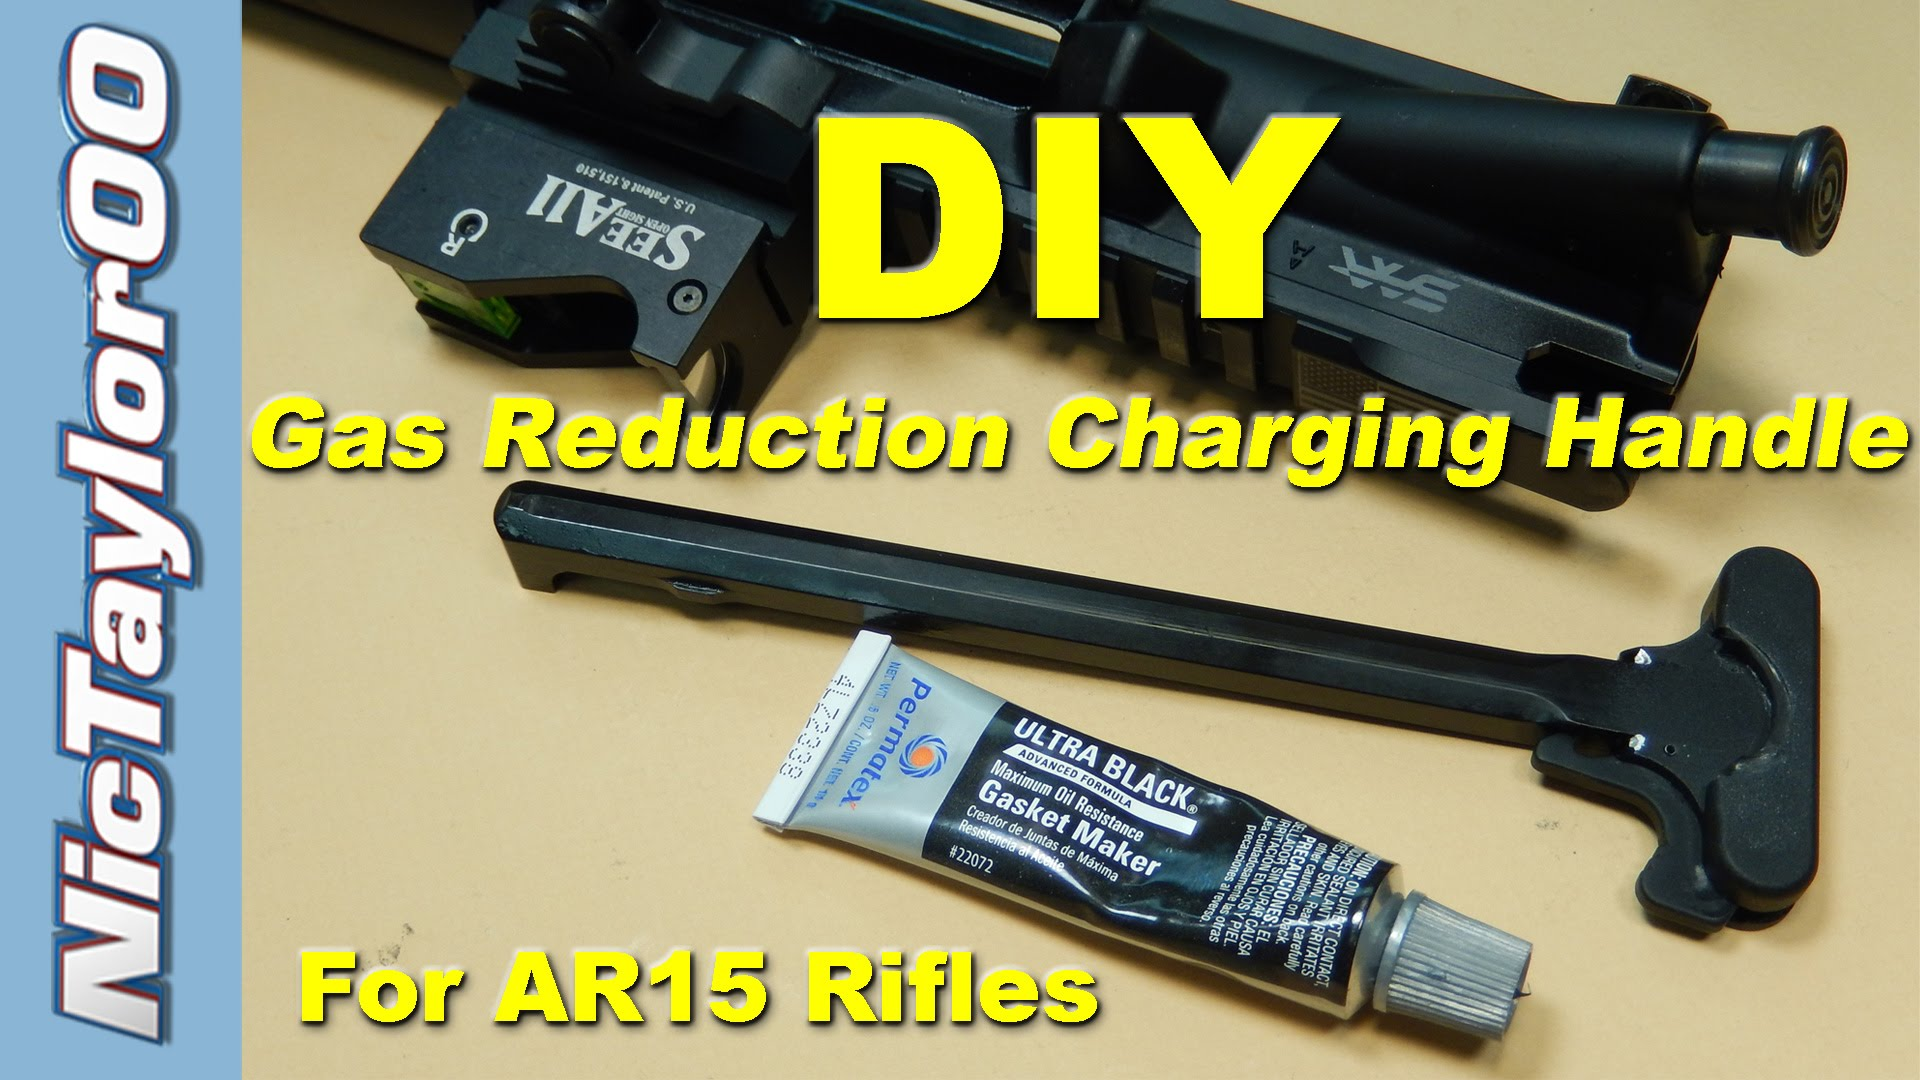 Simple DIY Gas Buster Charging Handle for the AR15